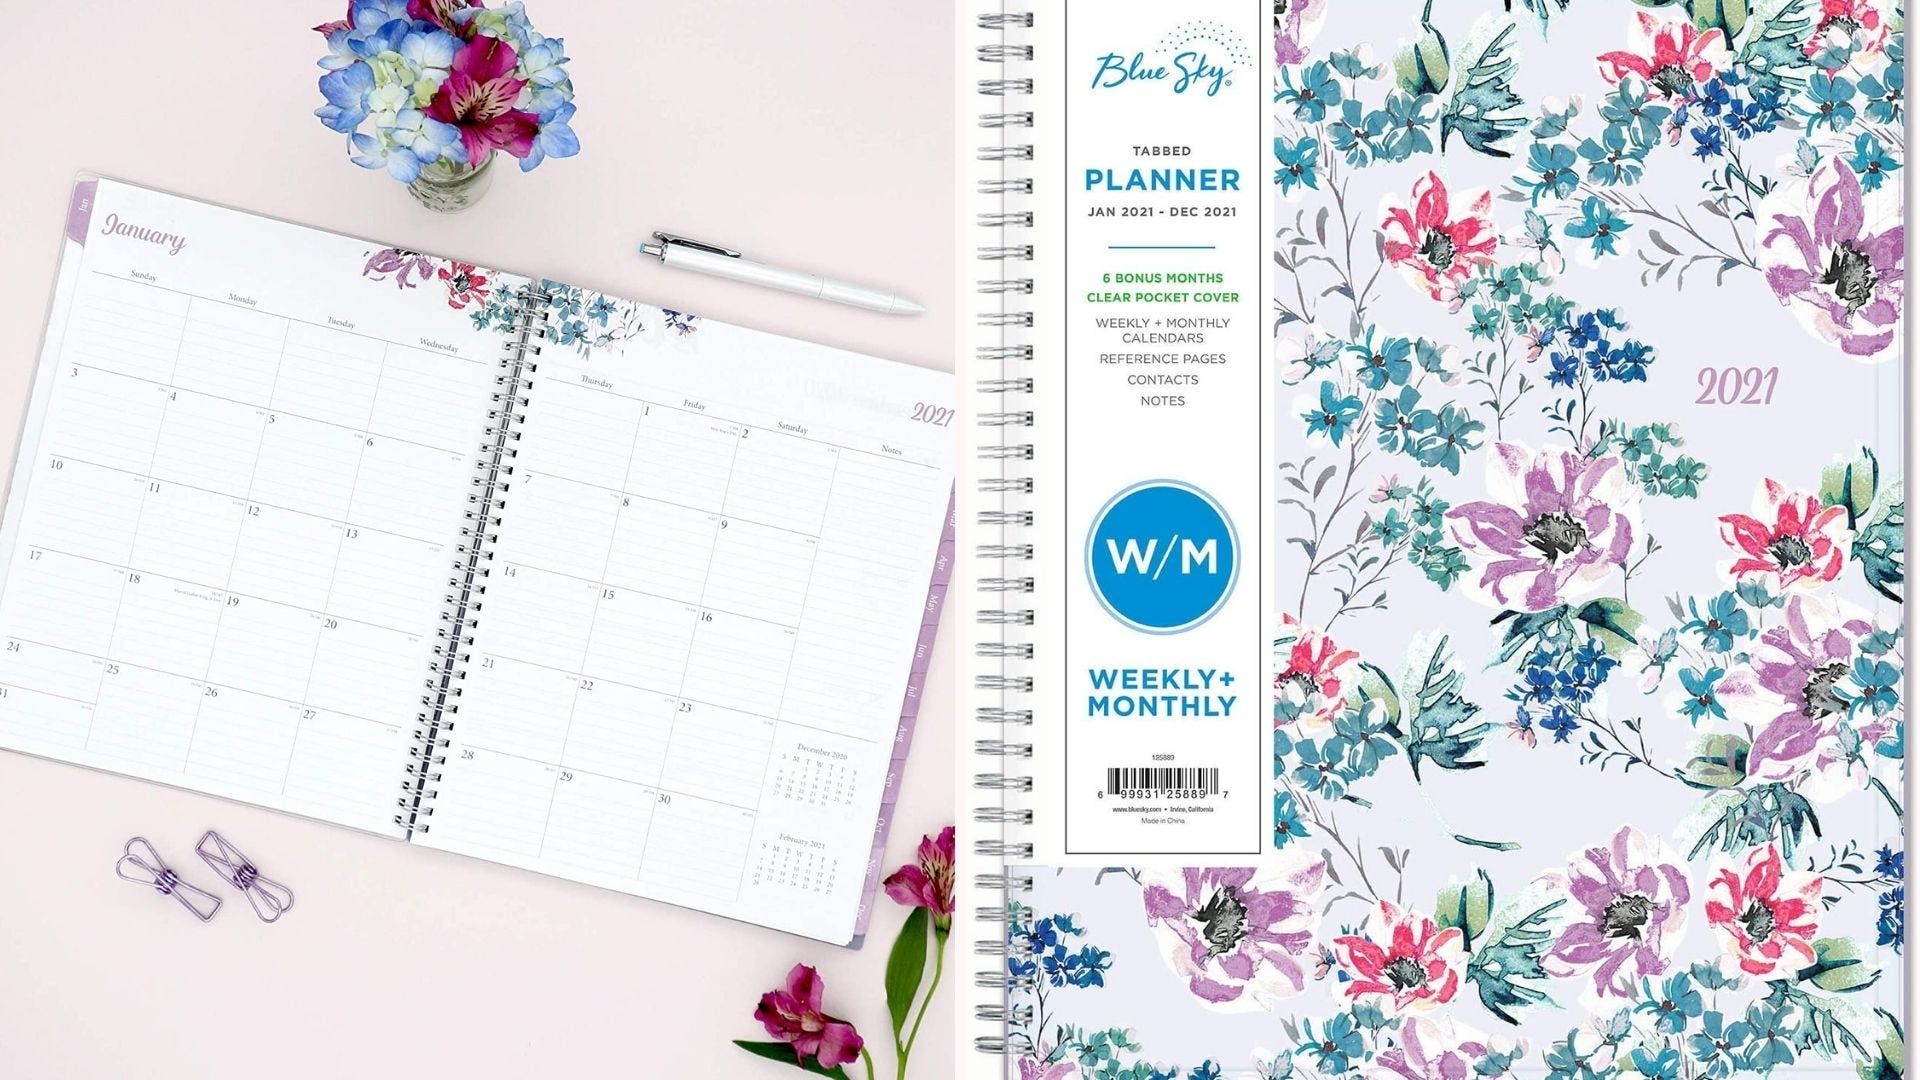 opened floral-printed planner on desk with flowers and pen